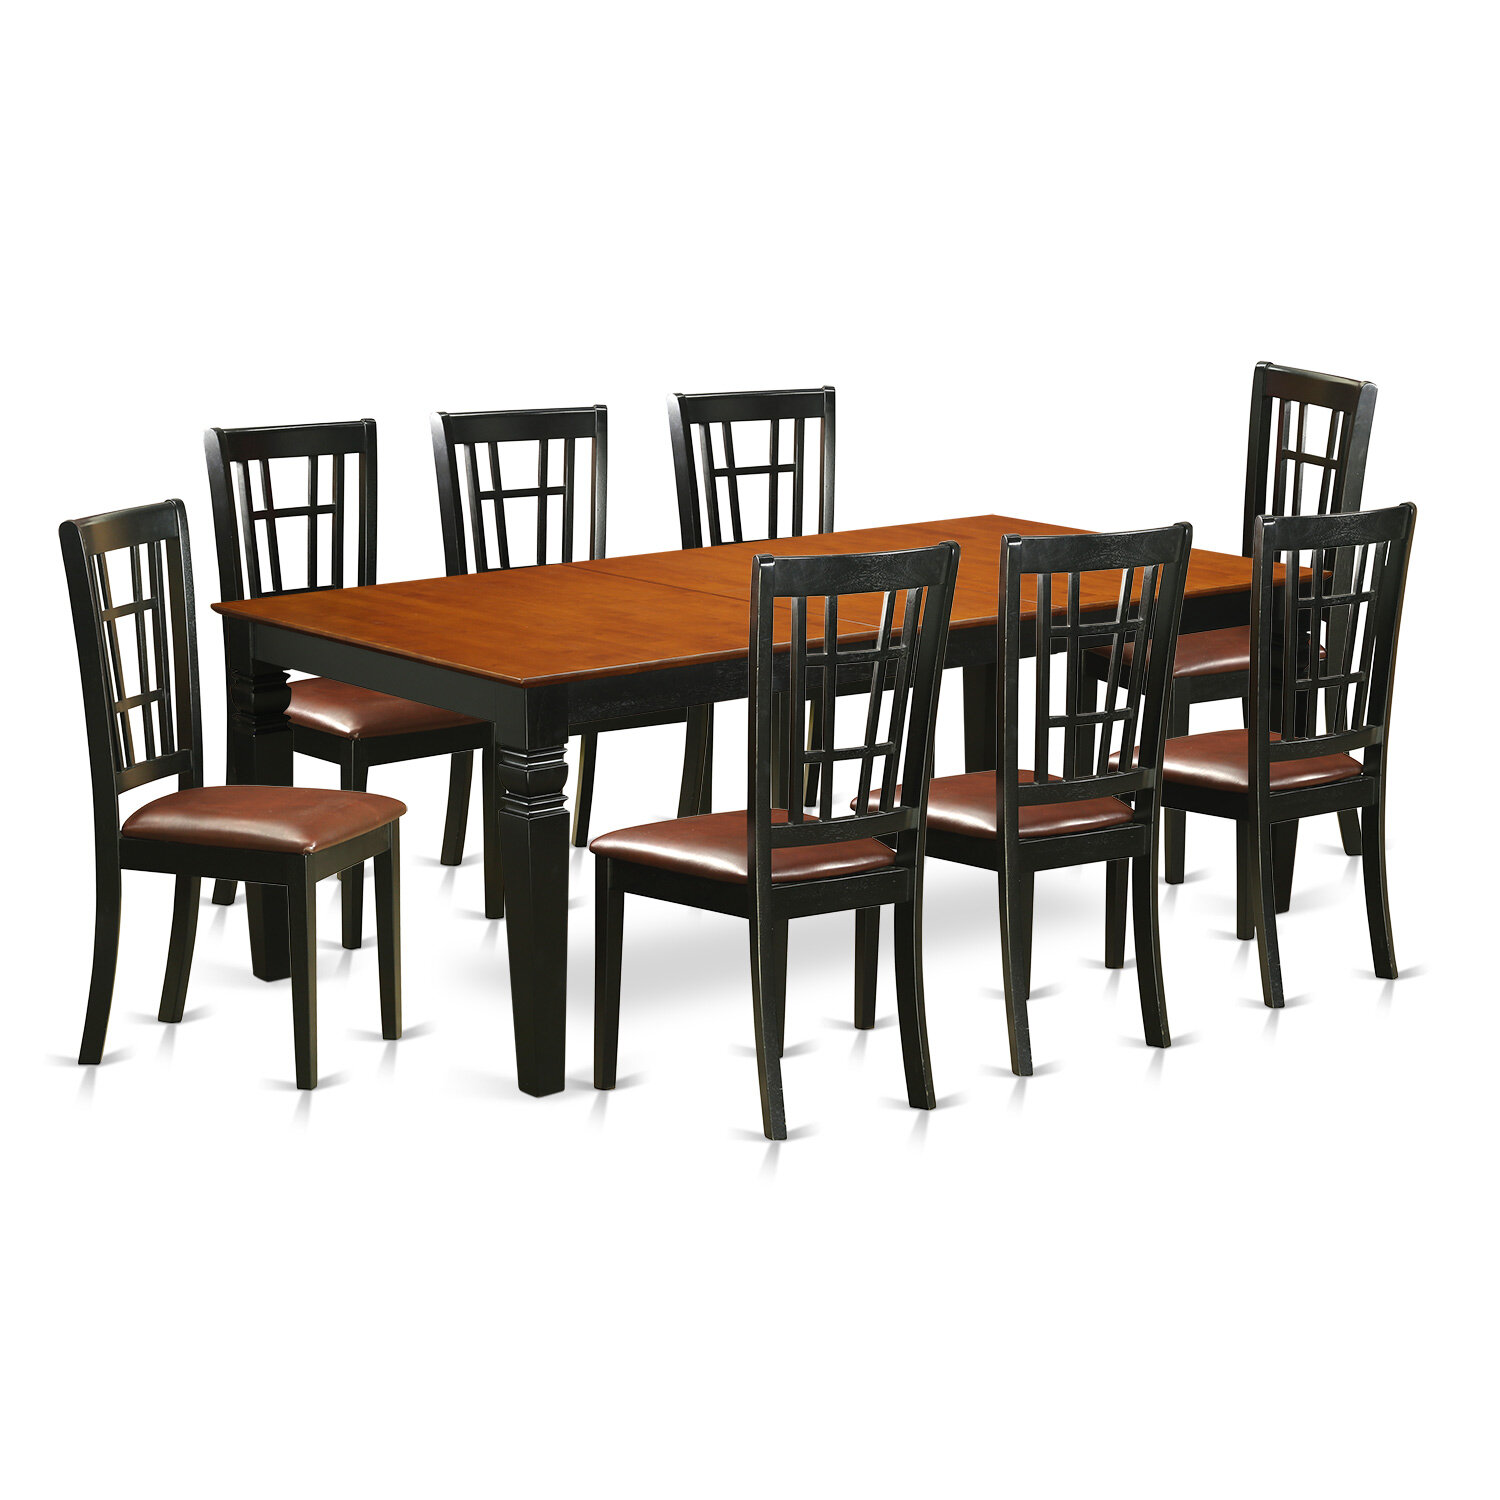 Darby Home Co Beesley 9 Piece Black/Cherry Wood Dining Set | Wayfair